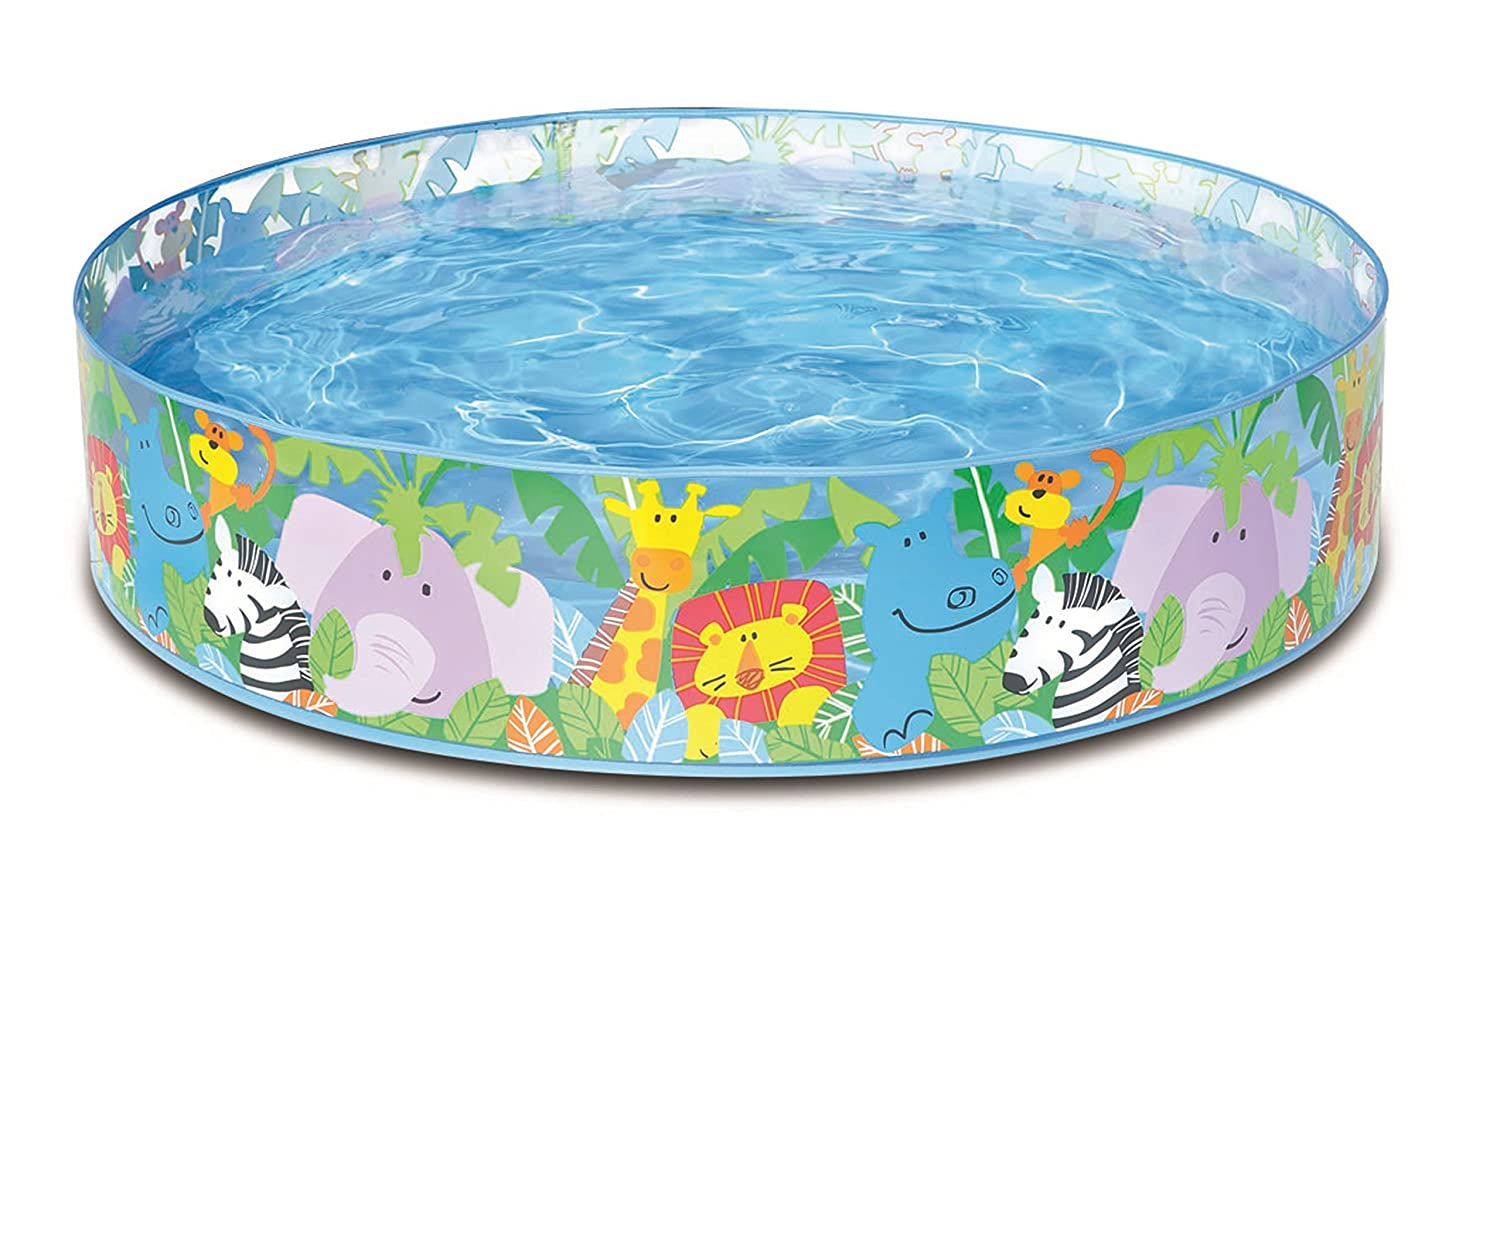 Buy Intex Snapset Water Pool - 4 Feet Online at Low Prices in India ...